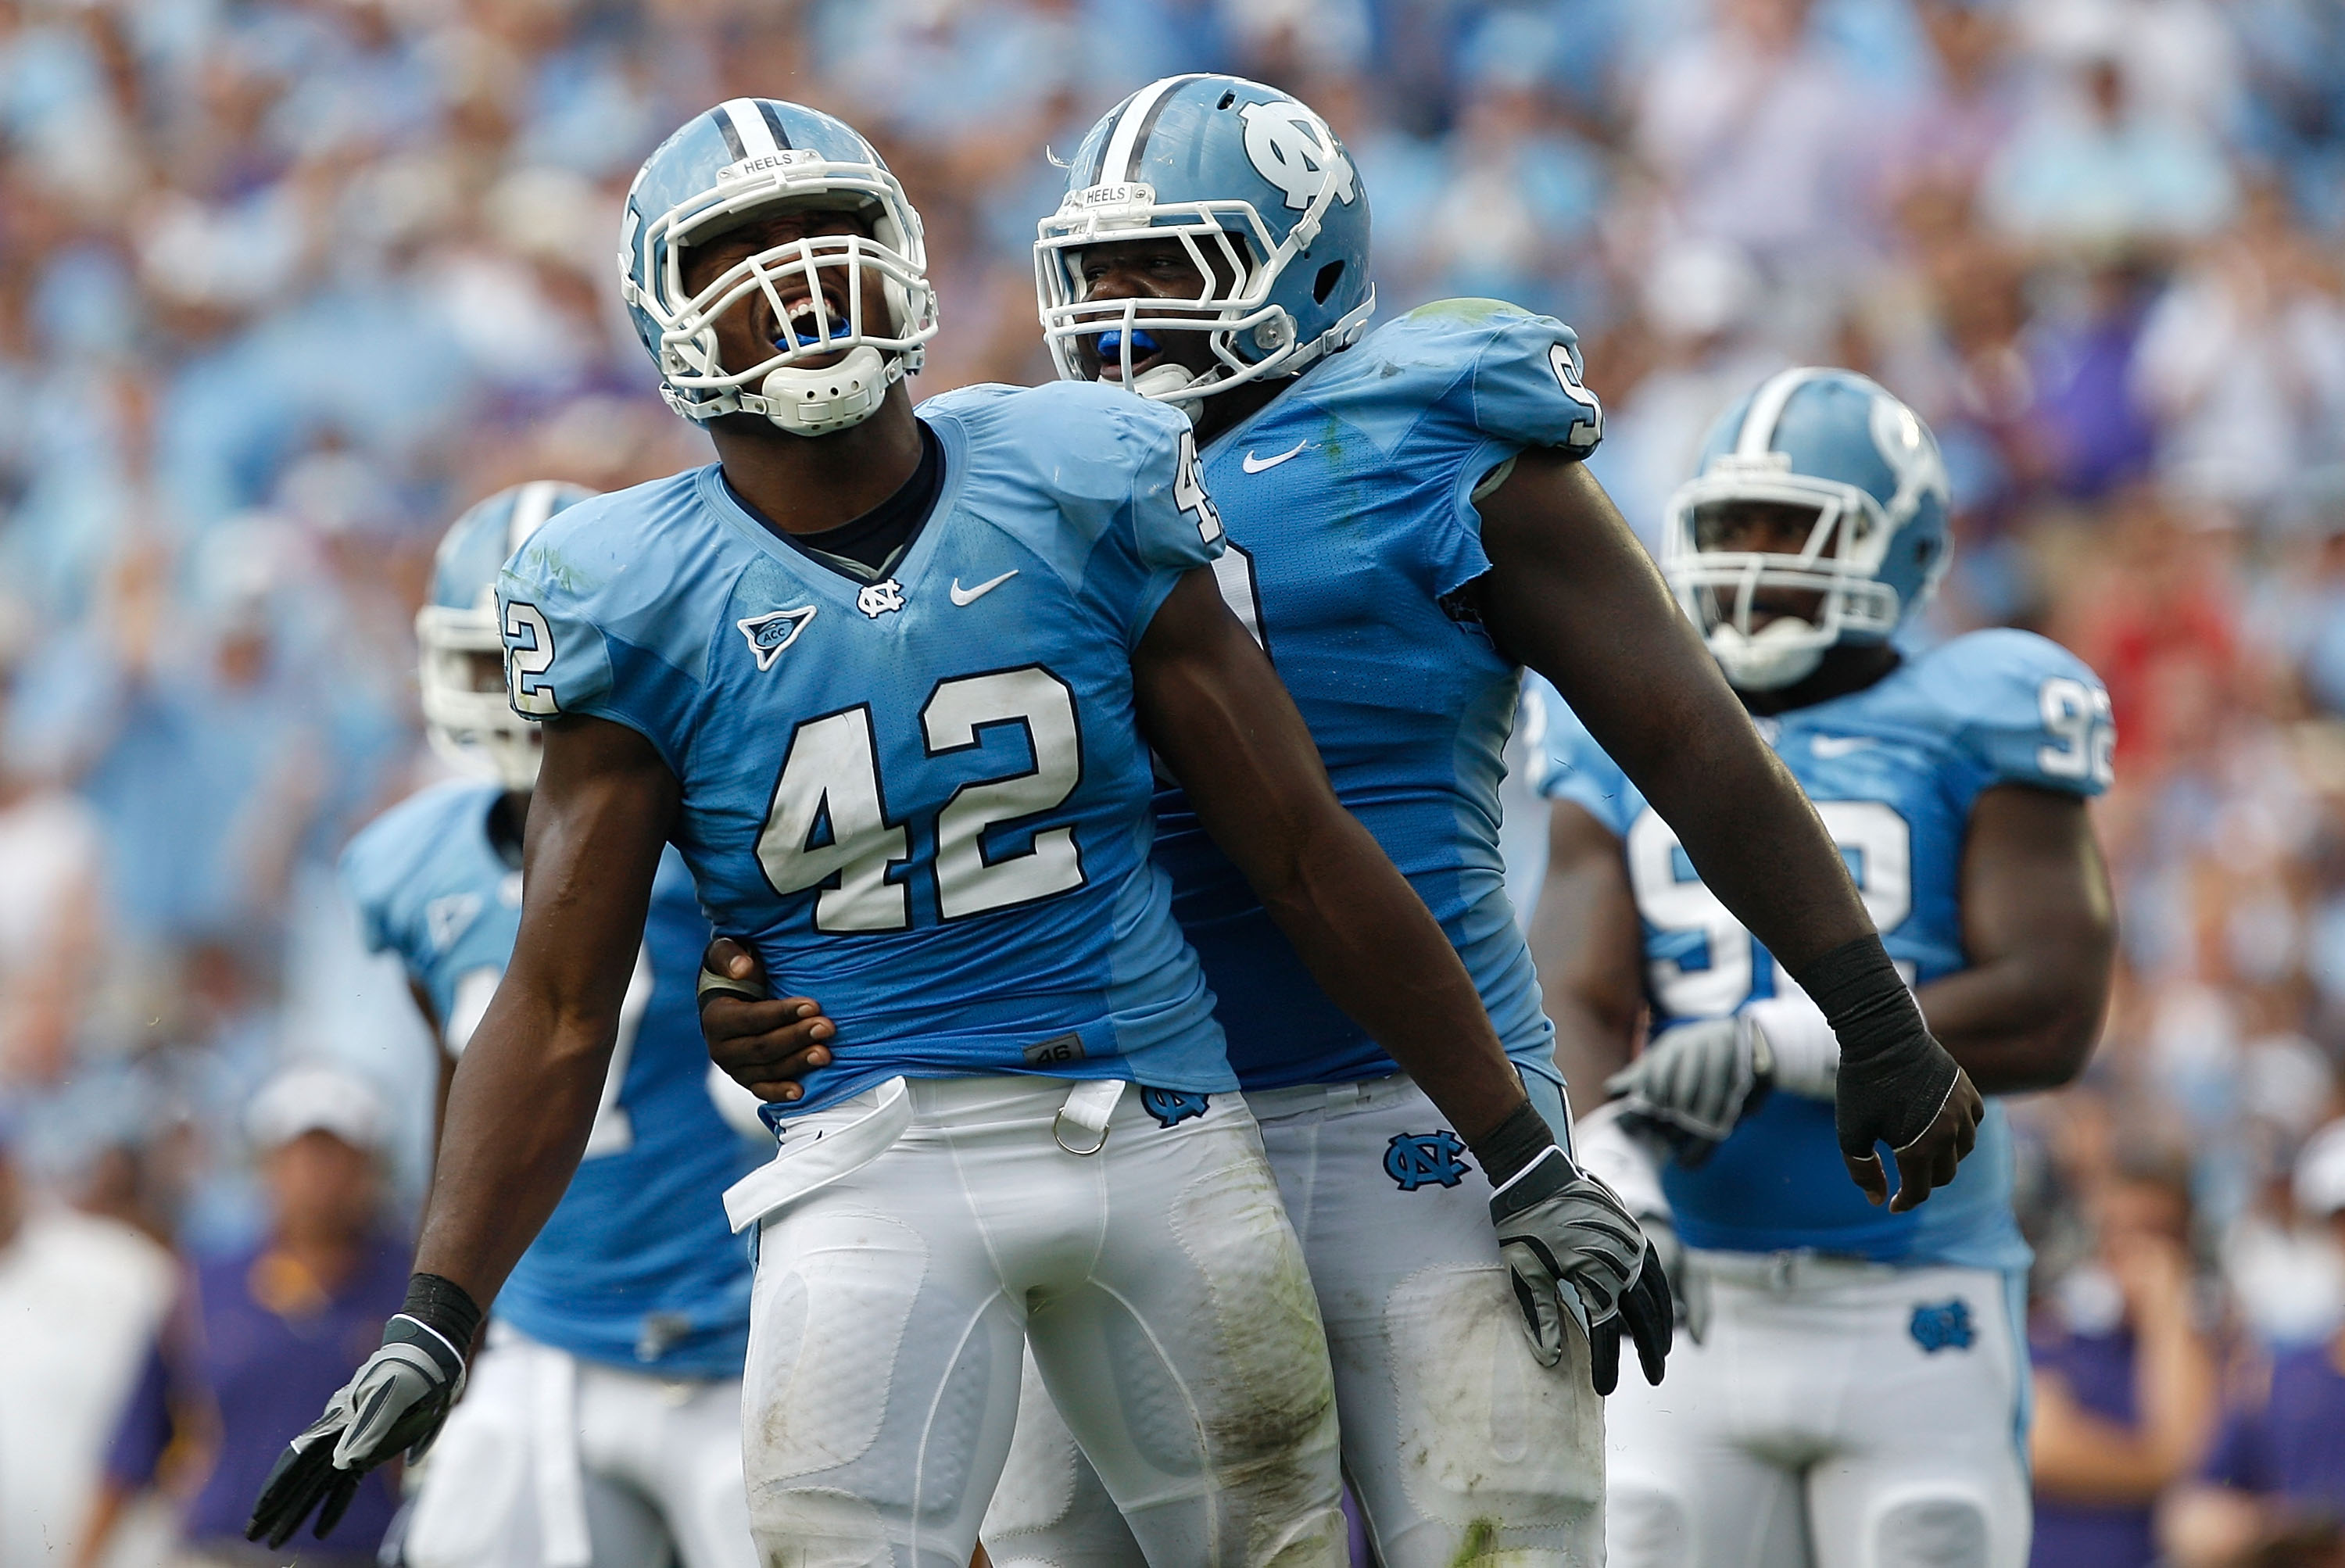 CHAPEL HILL, NC - SEPTEMBER 19:  Robert Quinn #42 of the North Carolina Tar Heels celebrates after a sack with teammate Marvin Austin #9 against the East Carolina Pirates at Kenan Stadium on September 19, 2009 in Chapel Hill, North Carolina.  (Photo by St